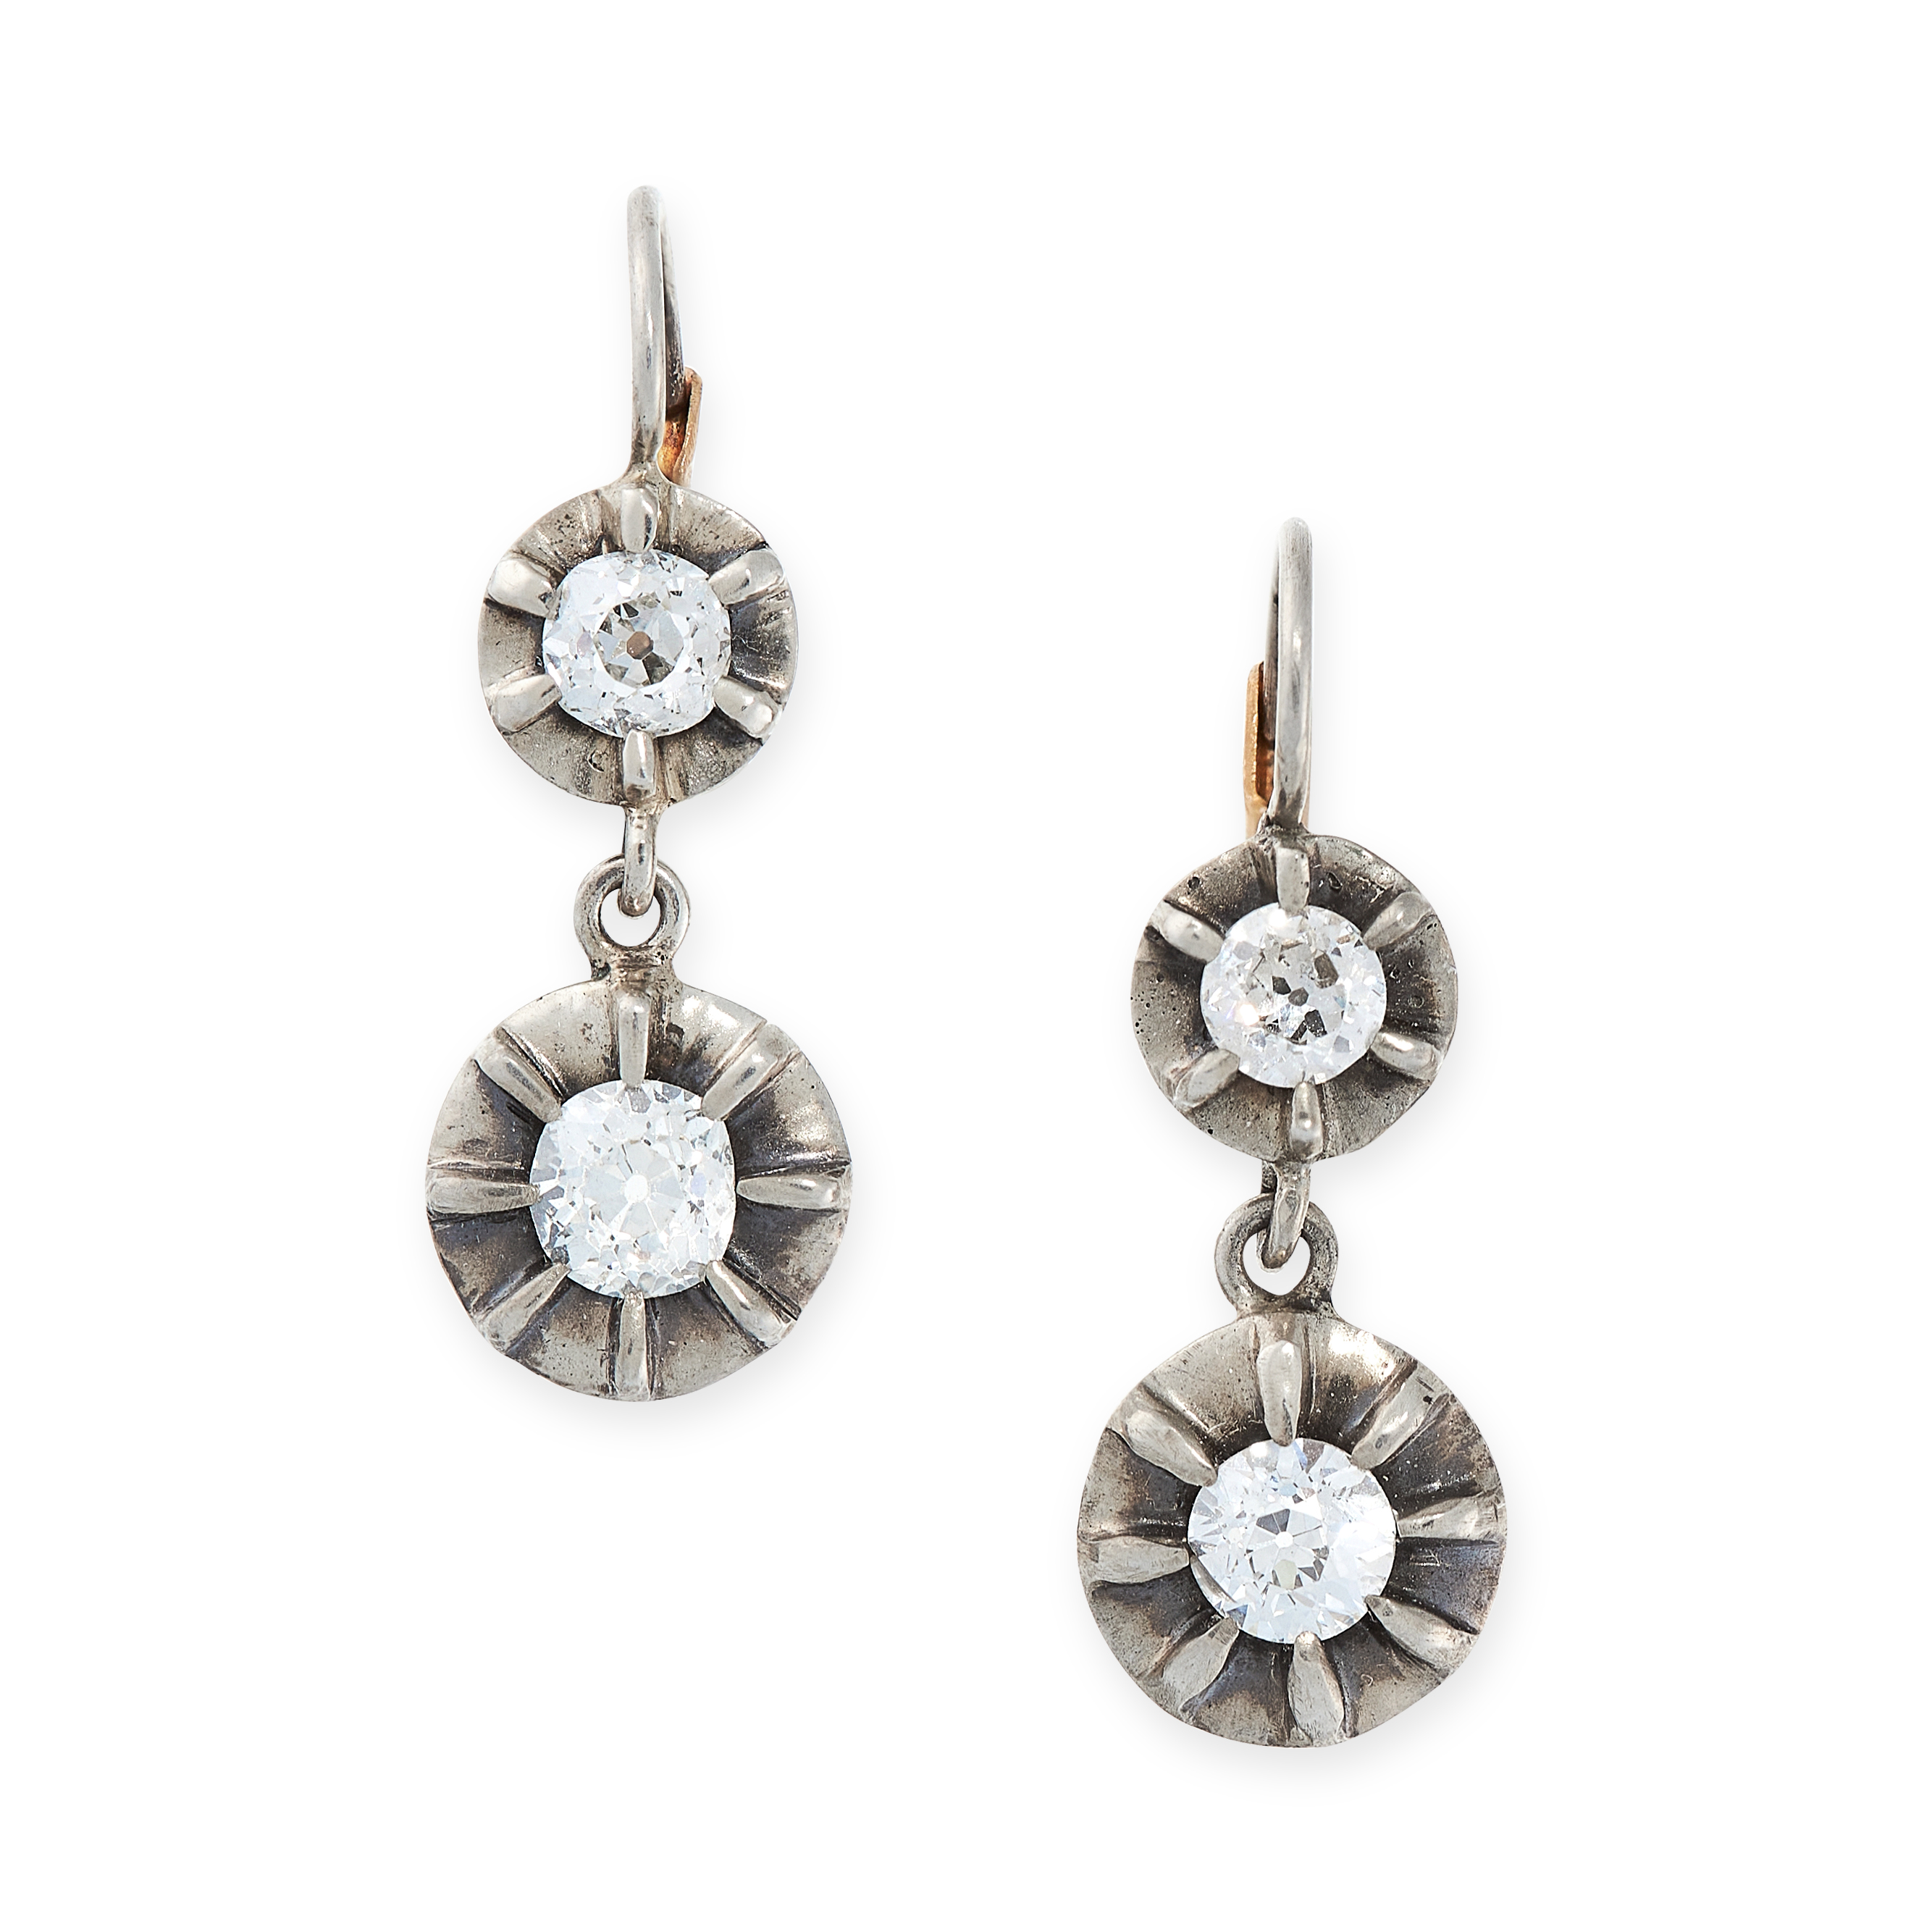 A PAIR OF DIAMOND DROP EARRINGS in yellow gold and silver, each formed of two articulated circular